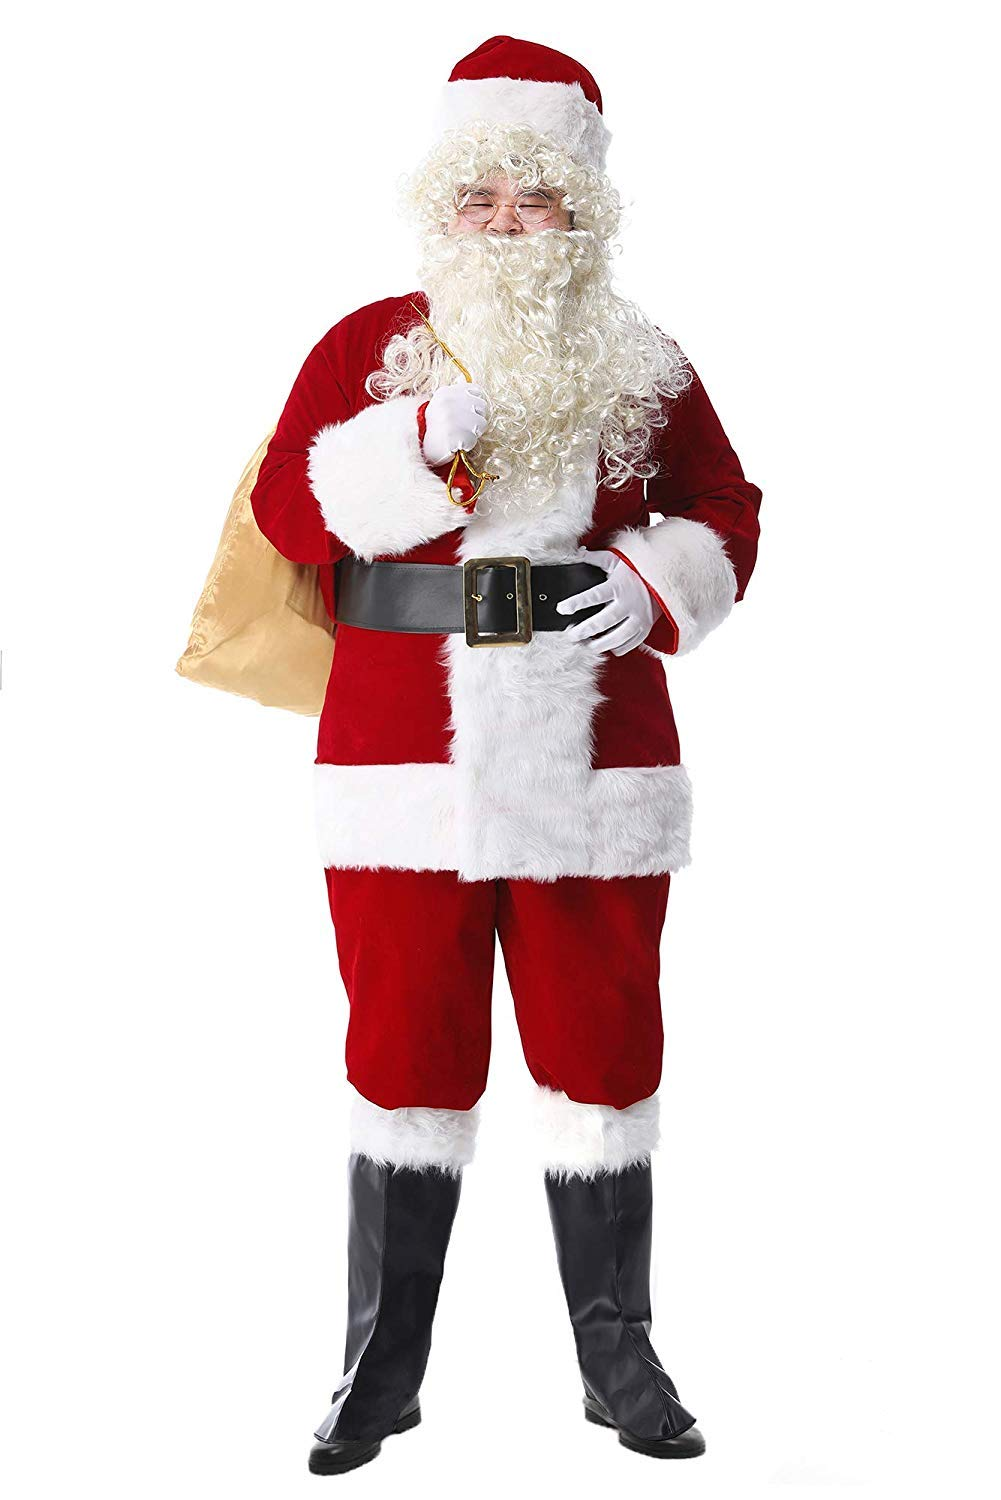 Epsion 10 Pcs Men Santa Suit Accessories Plus Size, Deluxe Adults Christmas Santa Claus Costume by Epsion